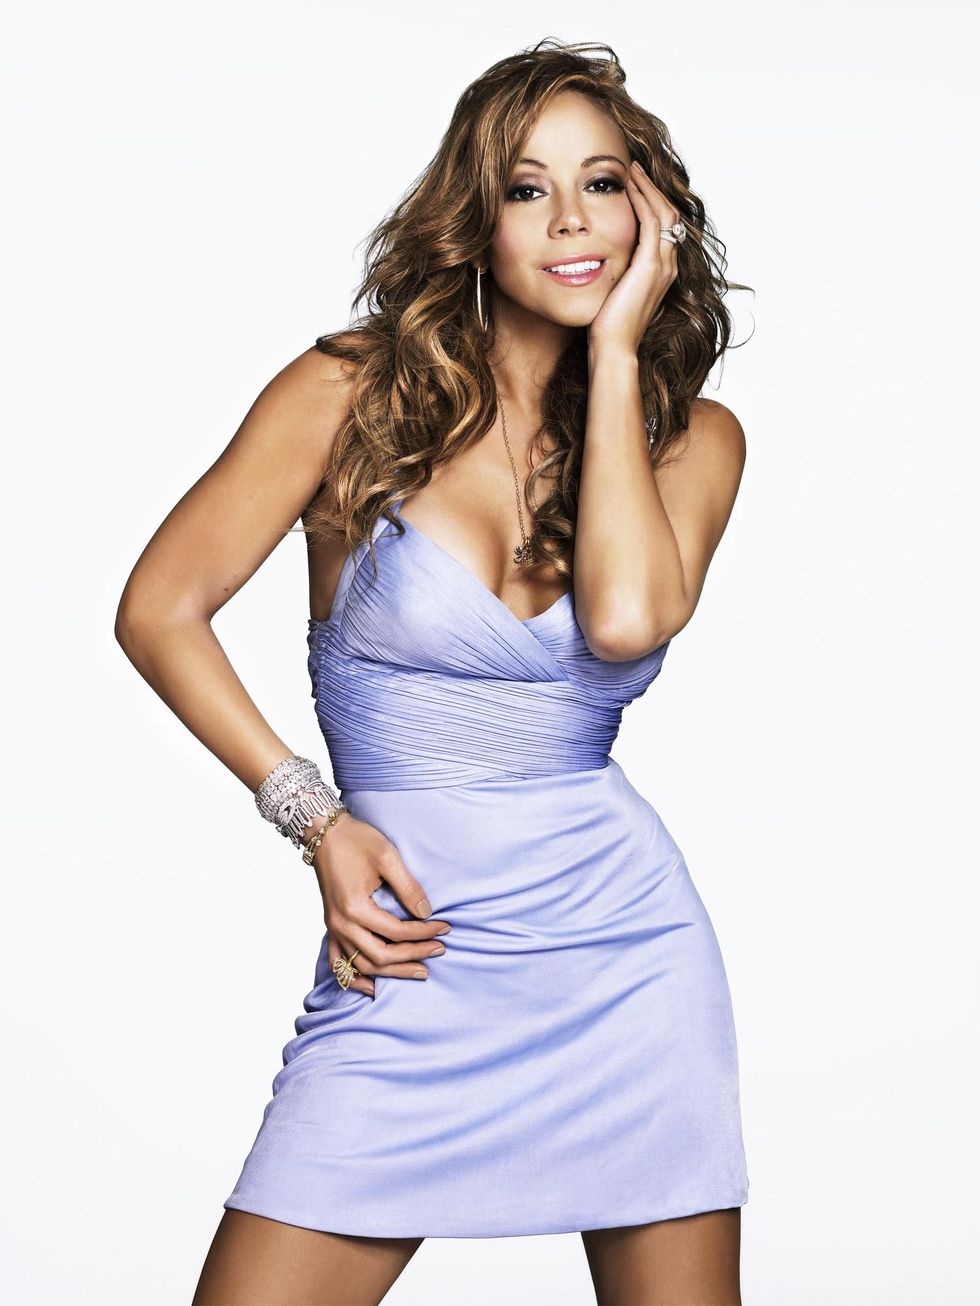 mariah-carey-elle-magazine-photoshoot-outtakes-01